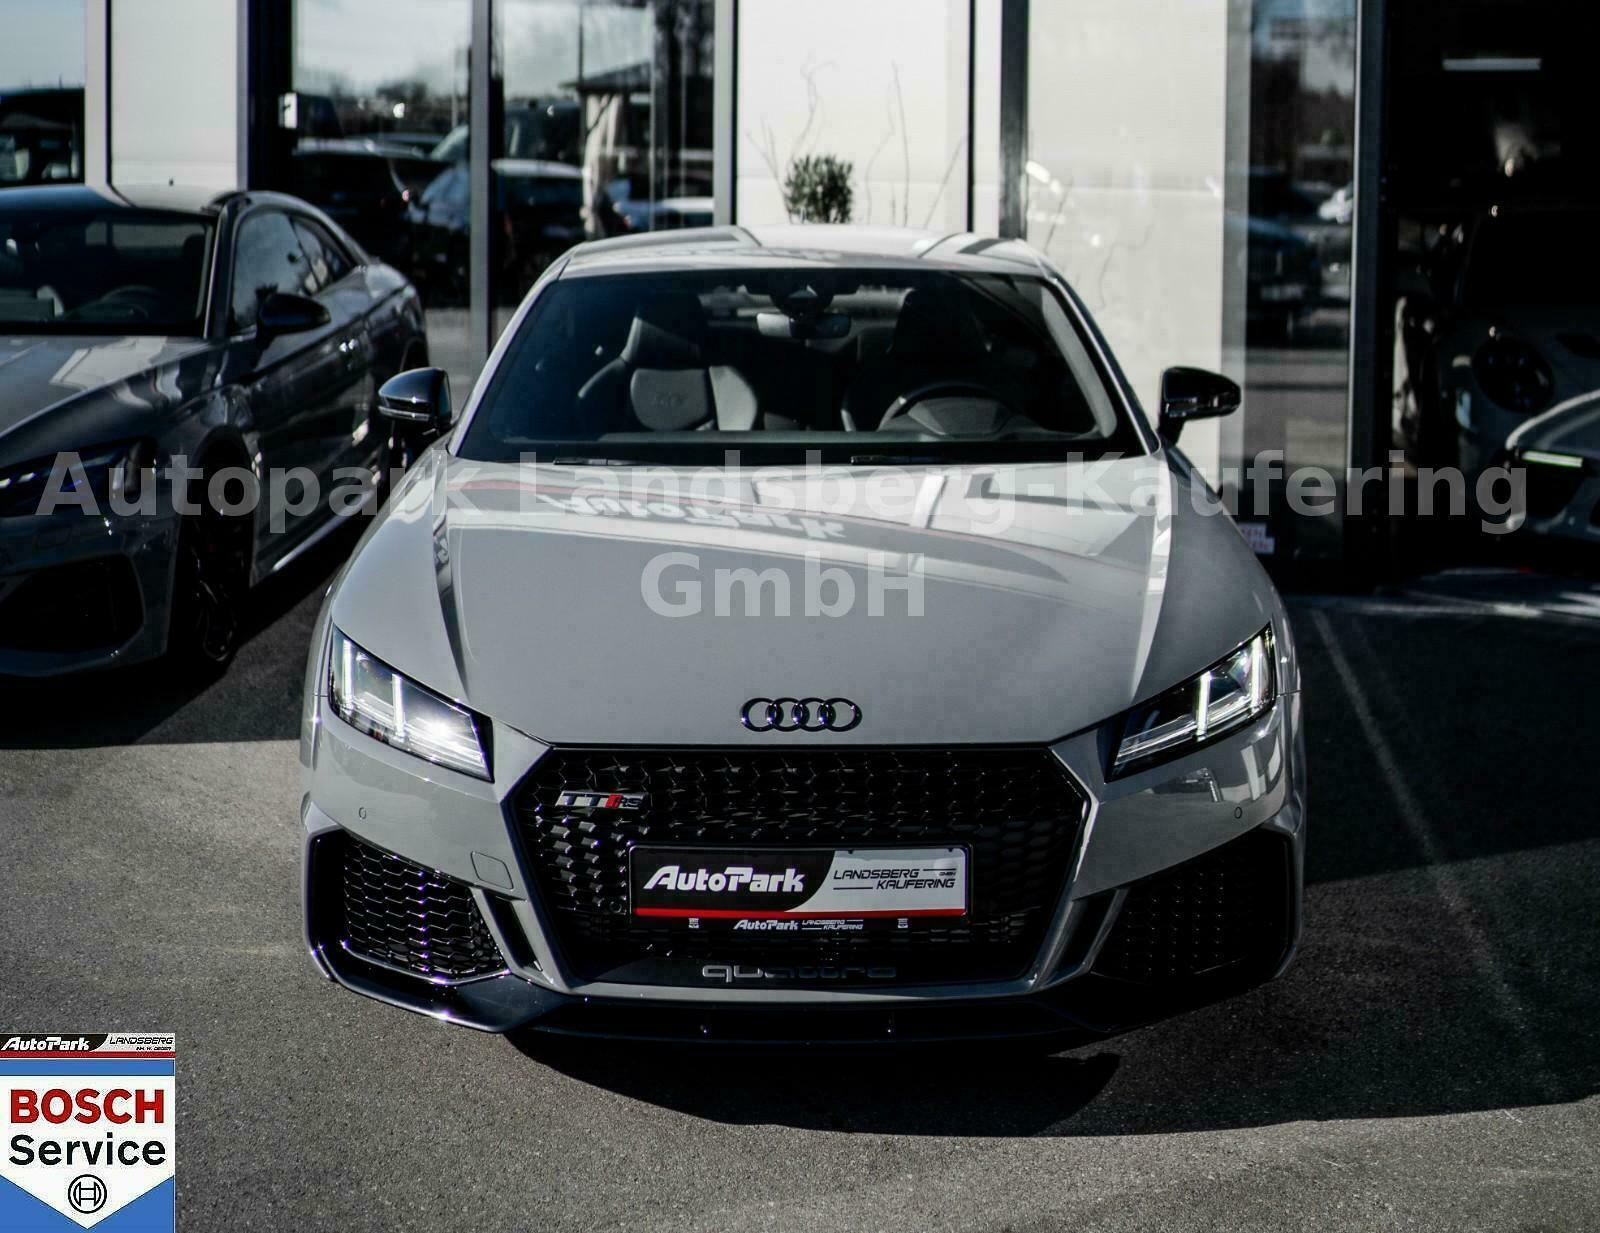 Audi TT RS Coupe 2.5 TFSI 21 GAR MATRIX SPORTABGAS